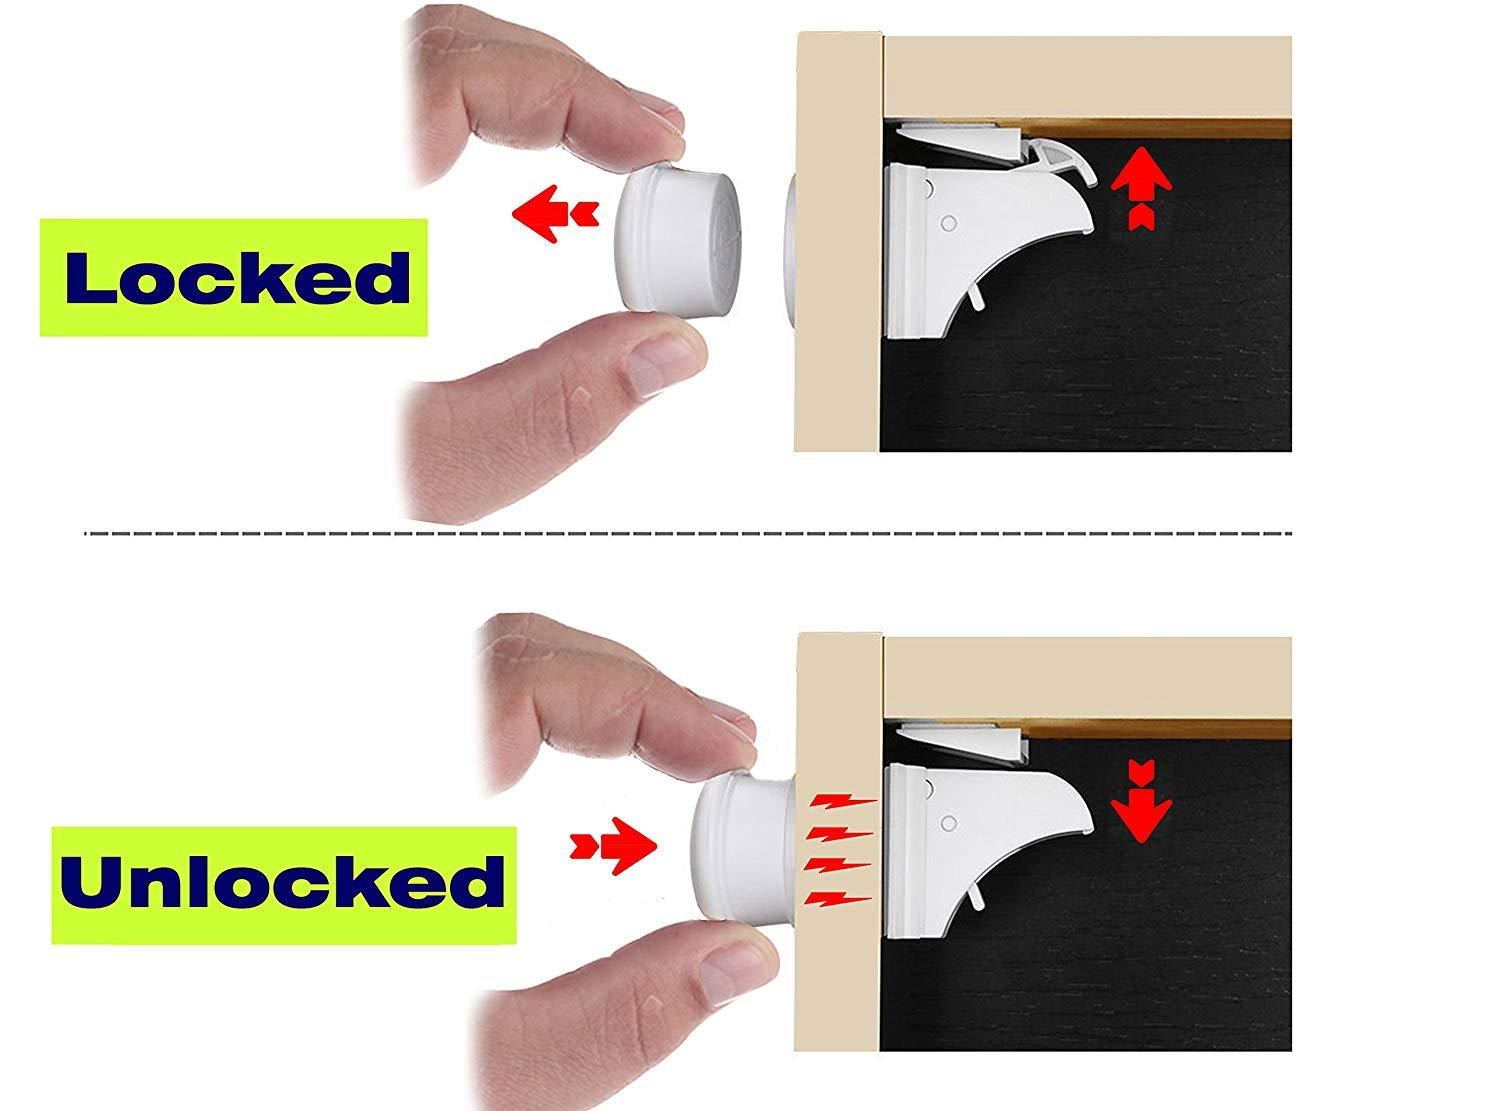 Child Safety Magnetic Cabinet Locks - Invisible Baby Proof Latch Set 8 Locks & 2 Keys Heavy Duty Locking System for Proofing Cabinets Drawers Doors Kitchen with 3M Adhesive (Tools aren't Required) by D-Panda-Safety (Image #8)